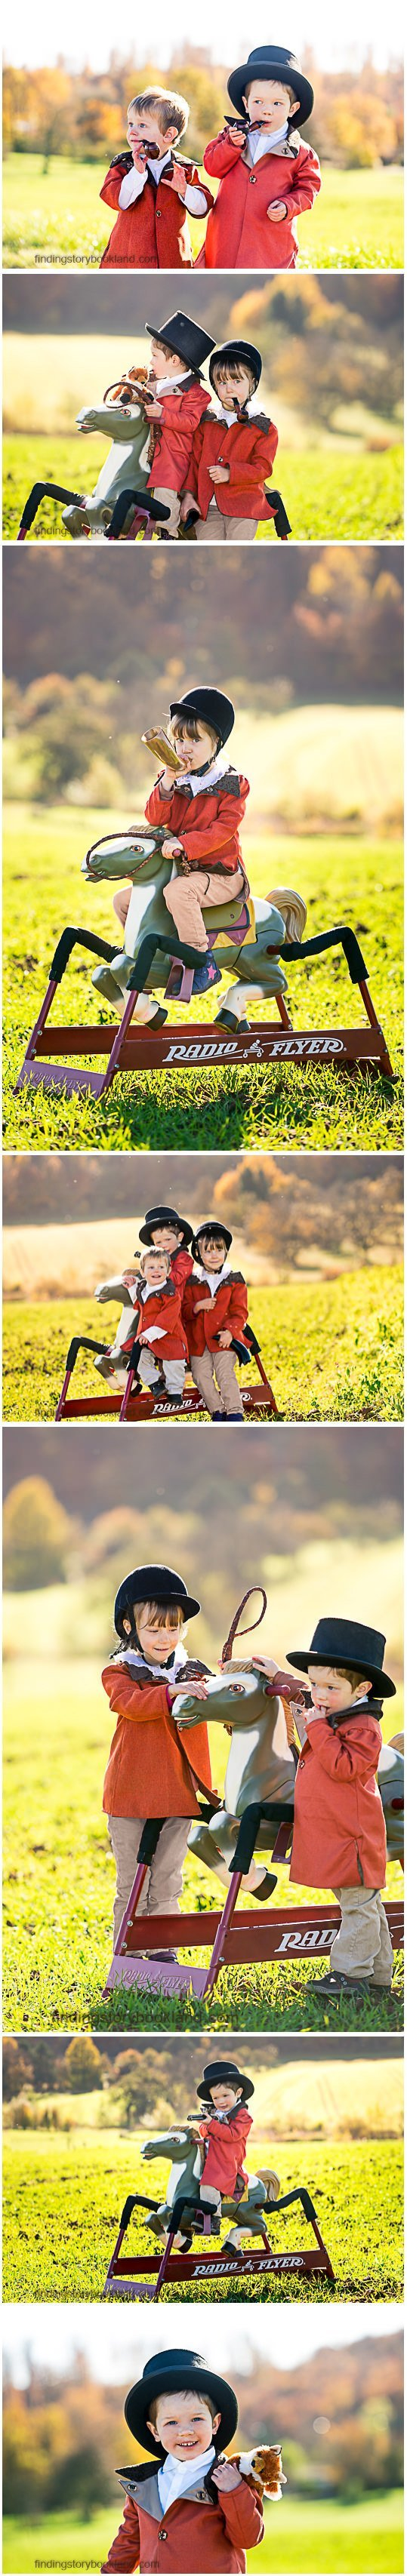 Fox Hunting Themed Childrens photo shoot 3